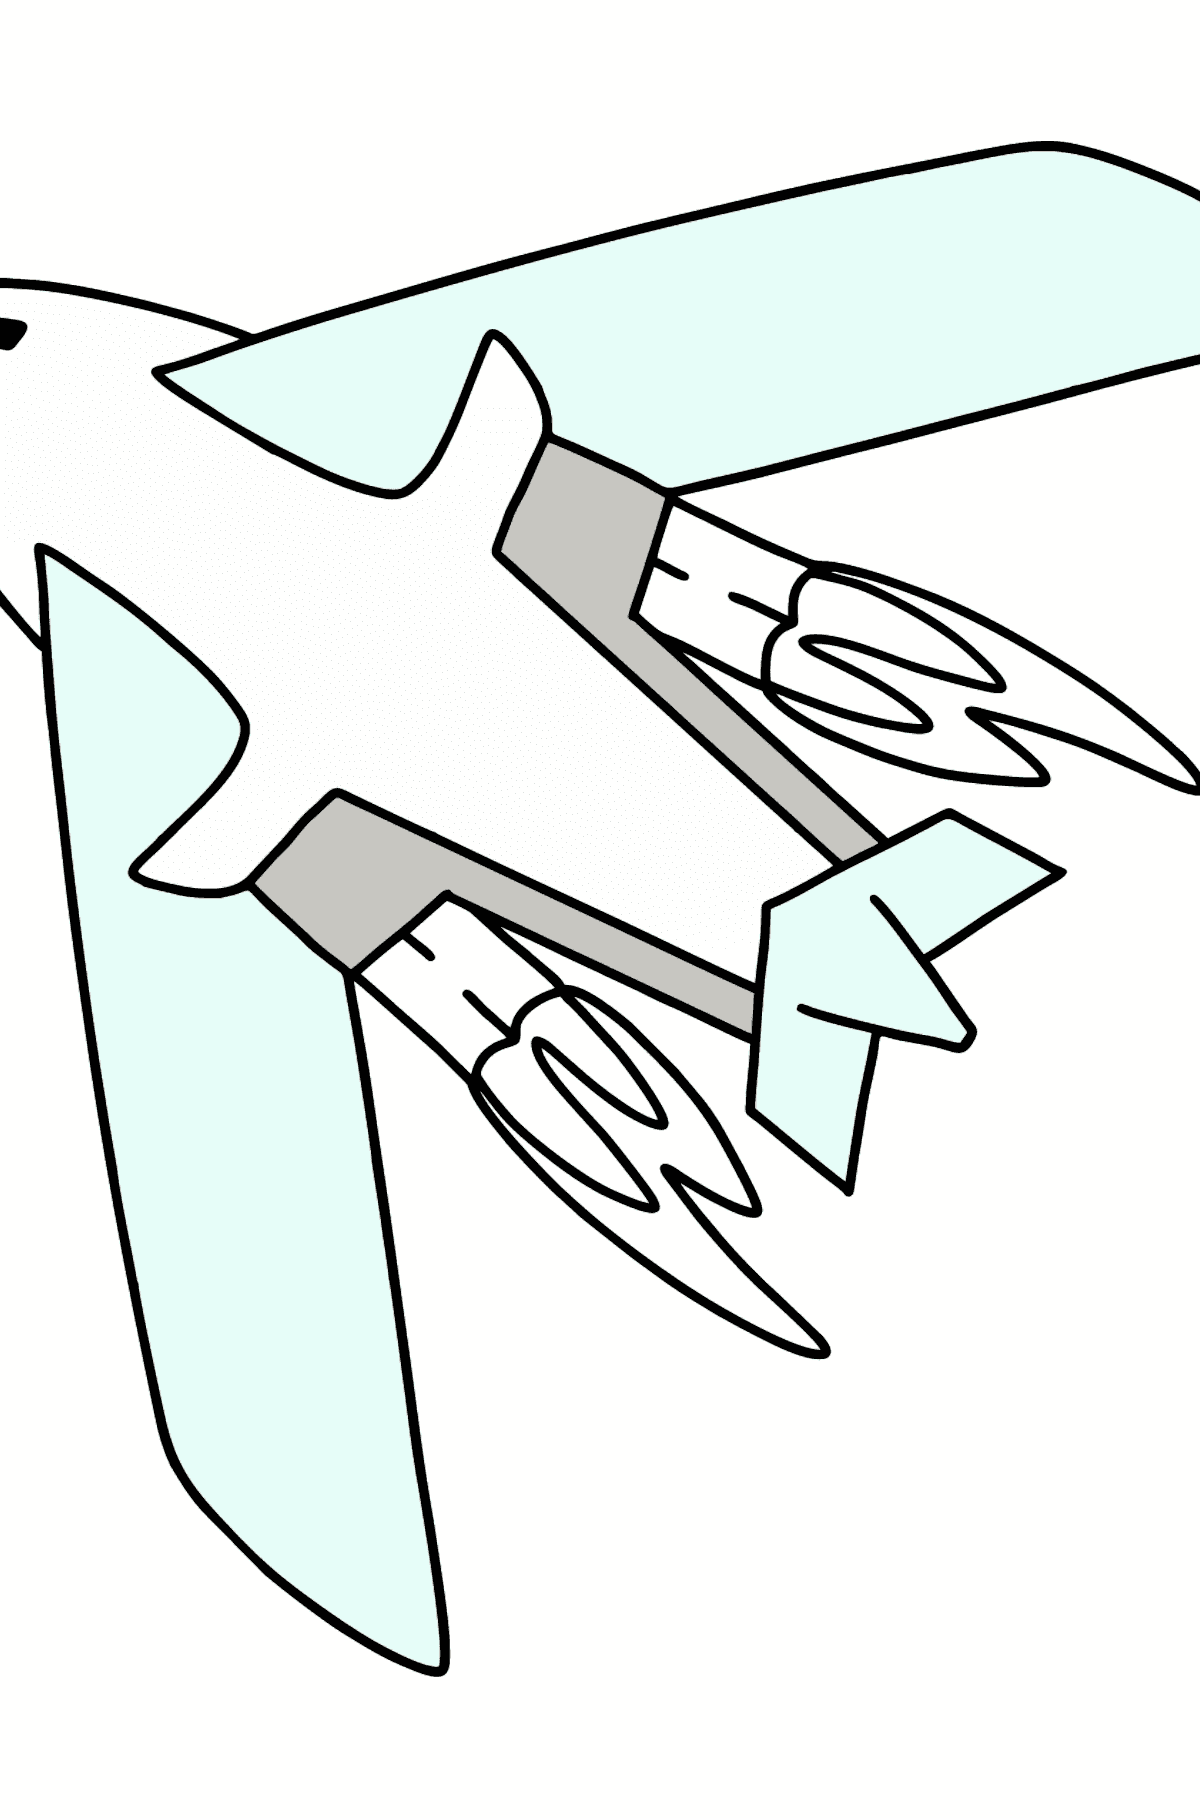 Airplane Tu-160 (White Swan) coloring page - Coloring Pages for Kids